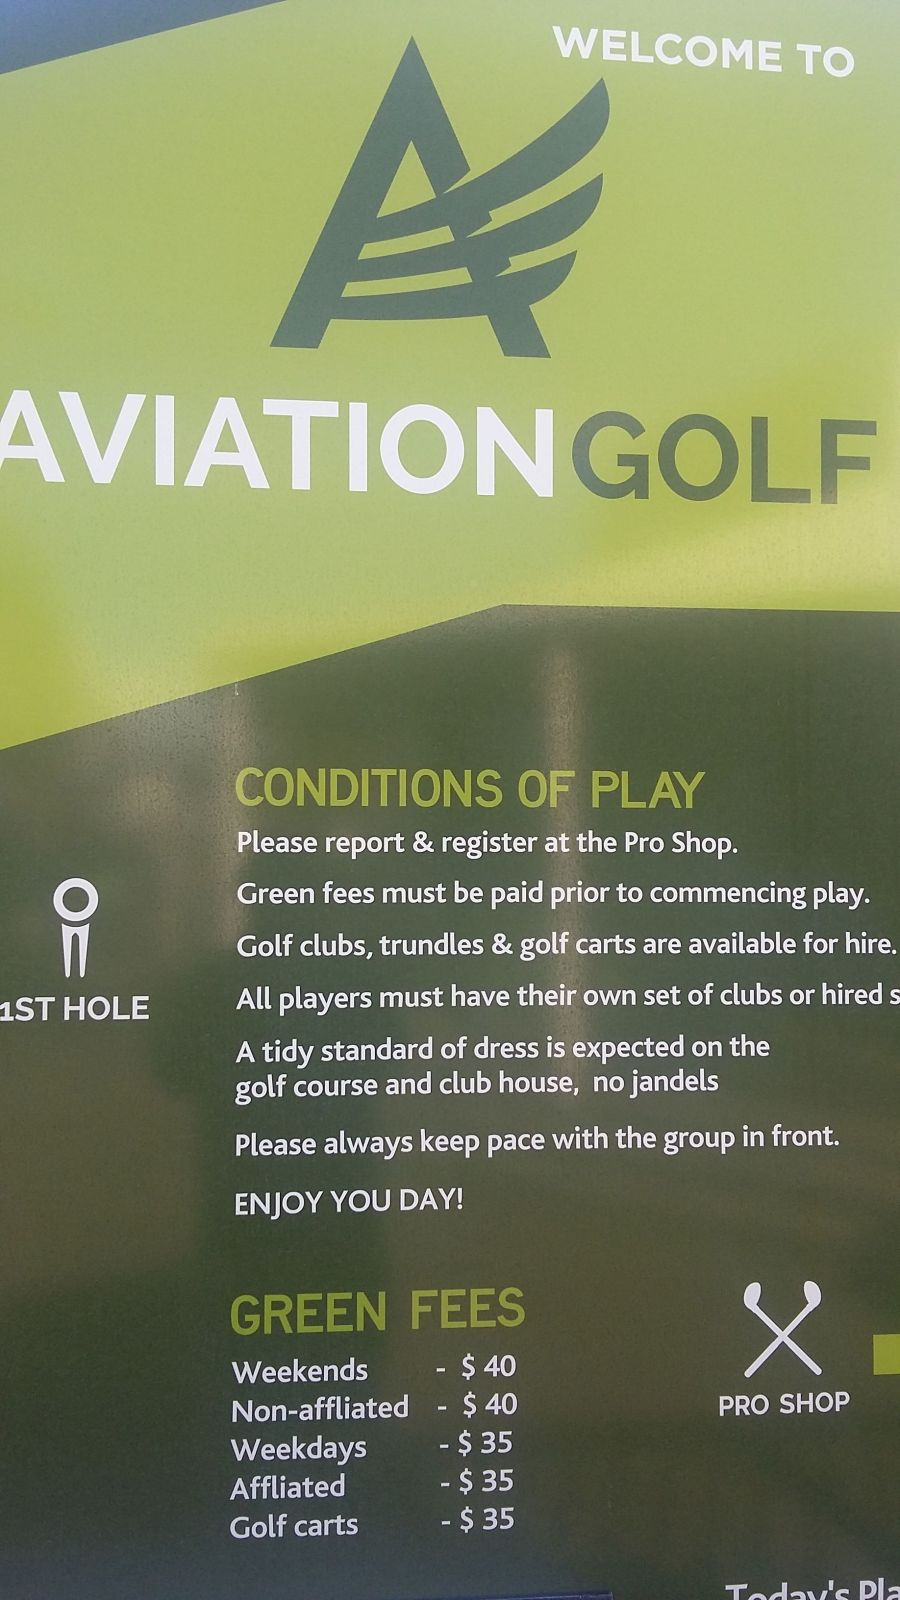 Aviation golf sign & fees.jpg